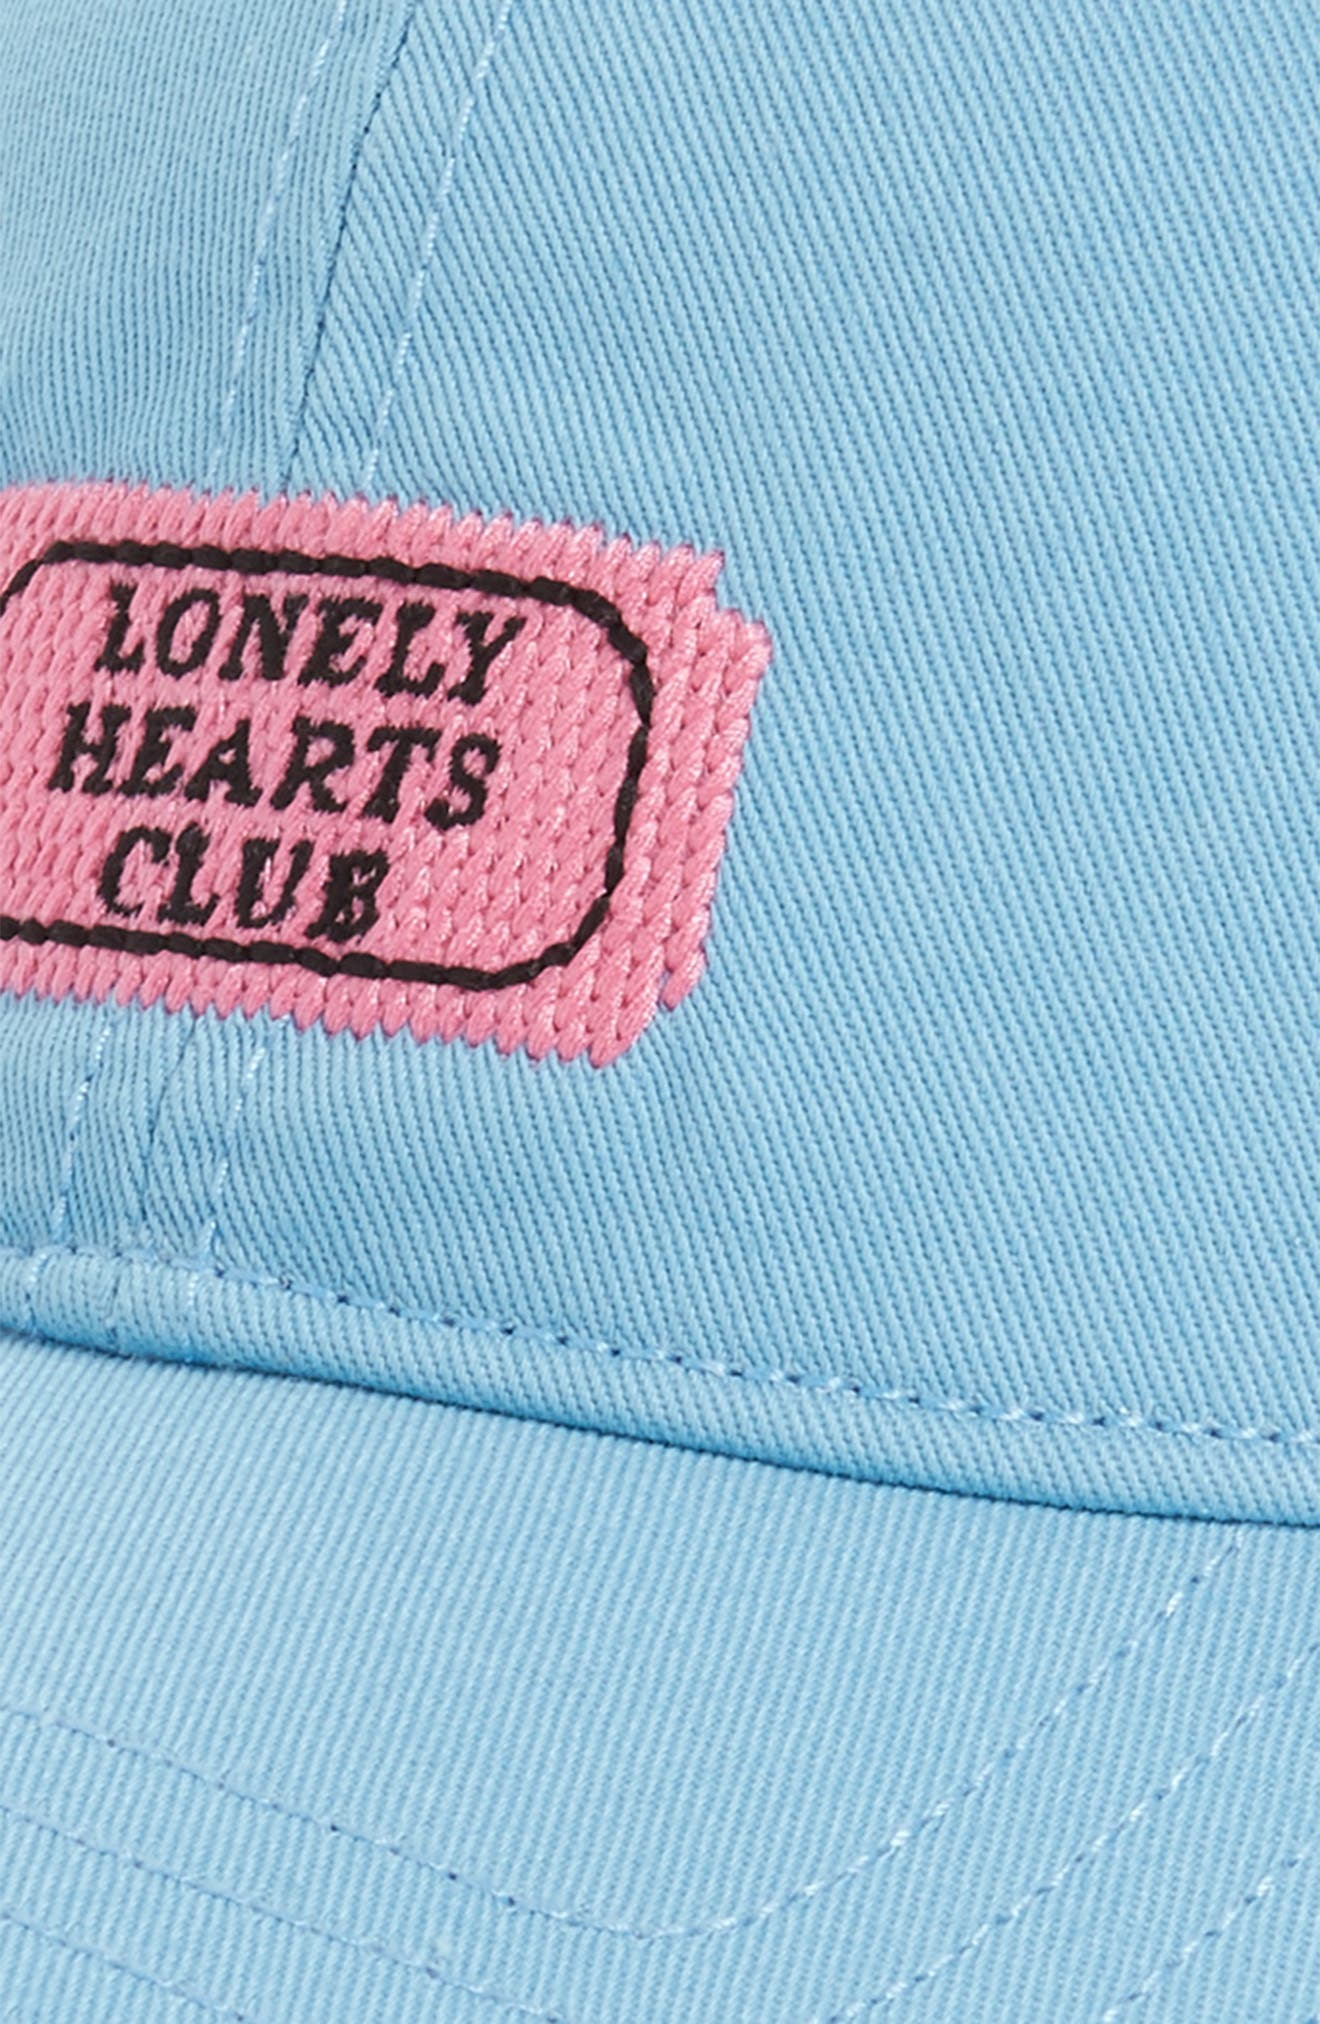 Lonely Heart Cap,                             Alternate thumbnail 3, color,                             Blue